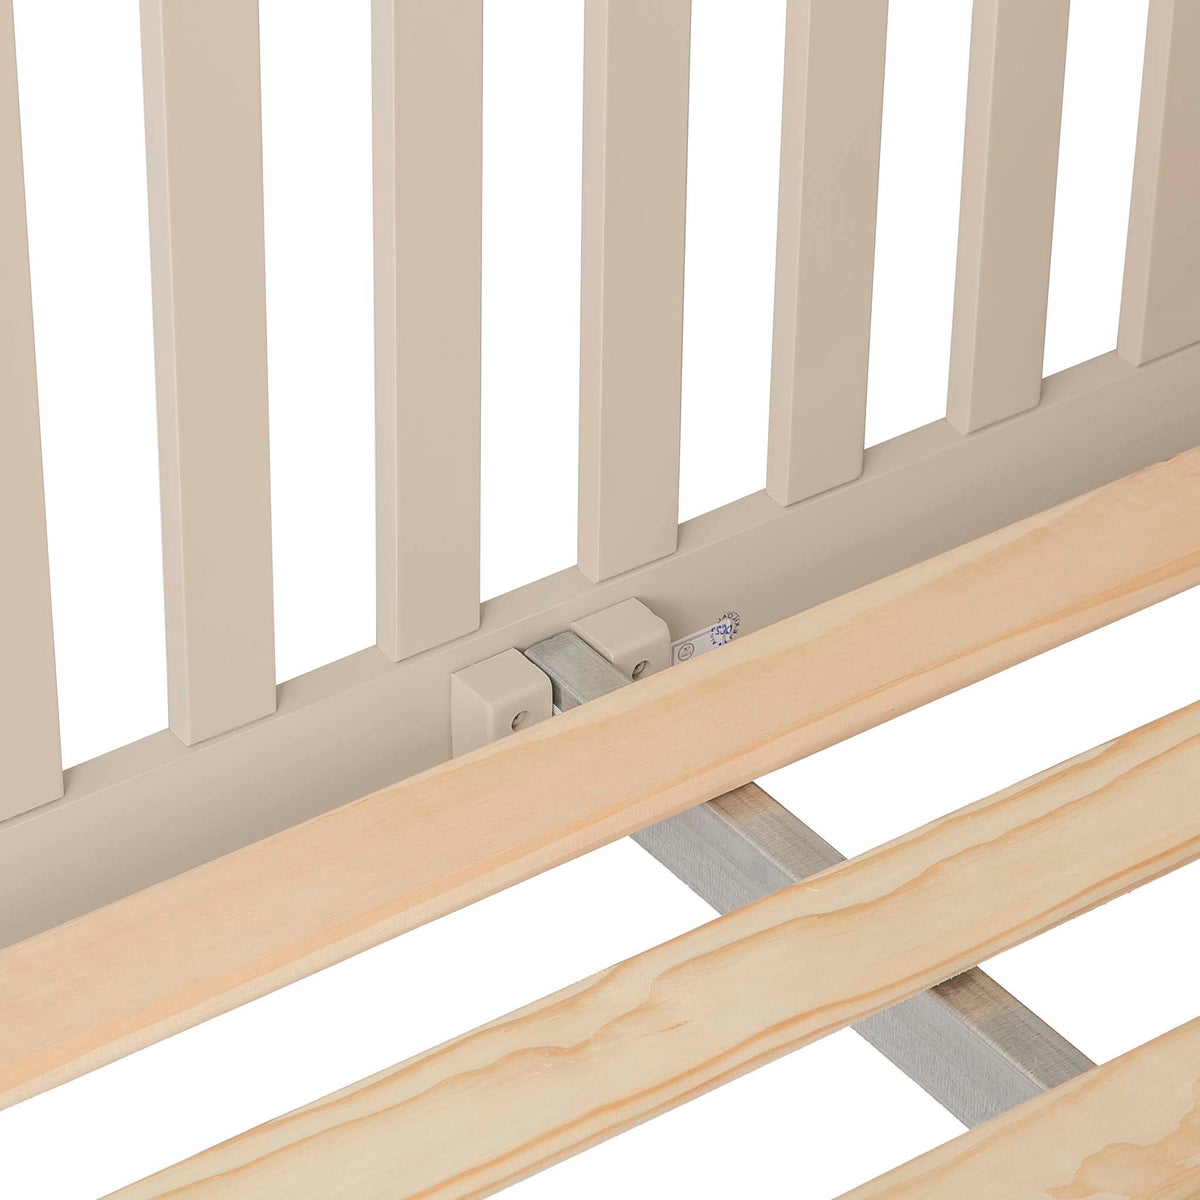 Padstow Stone Grey Double Bed Frame - Close up of centre bracket and slats of base of Bedframe